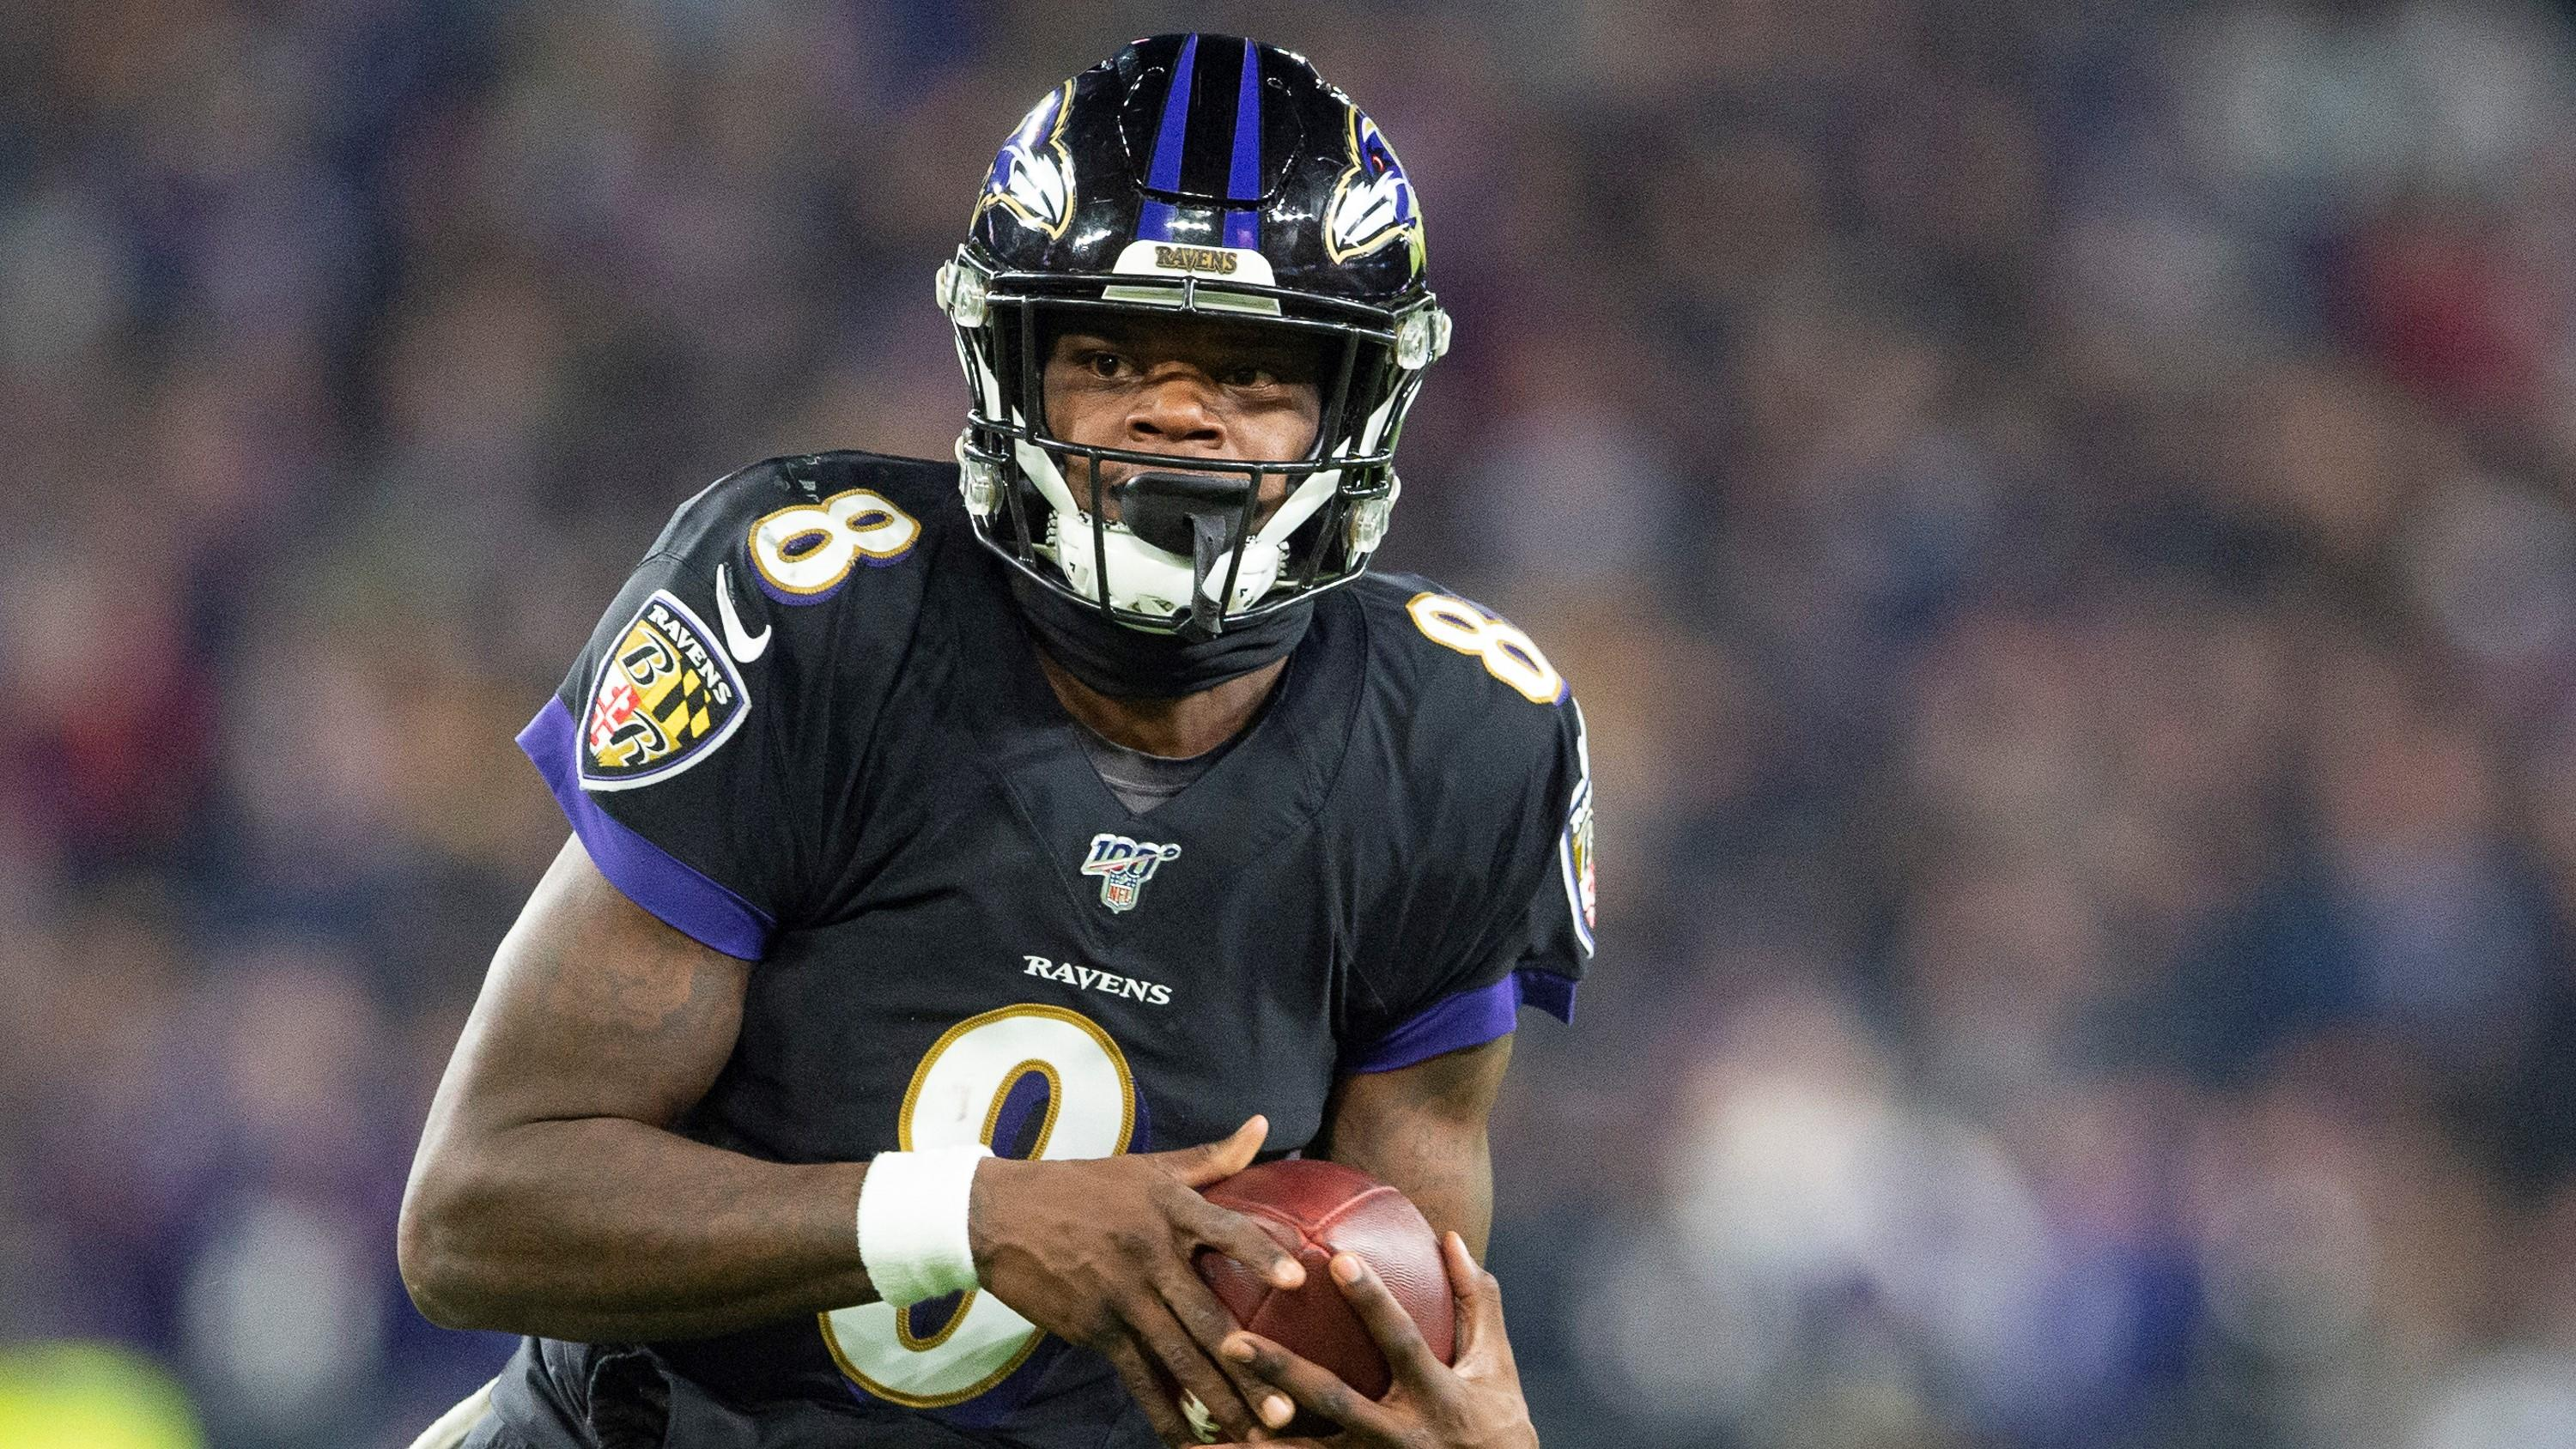 Lamar Jackson admits he cried after seeing himself on Madden 21 cover